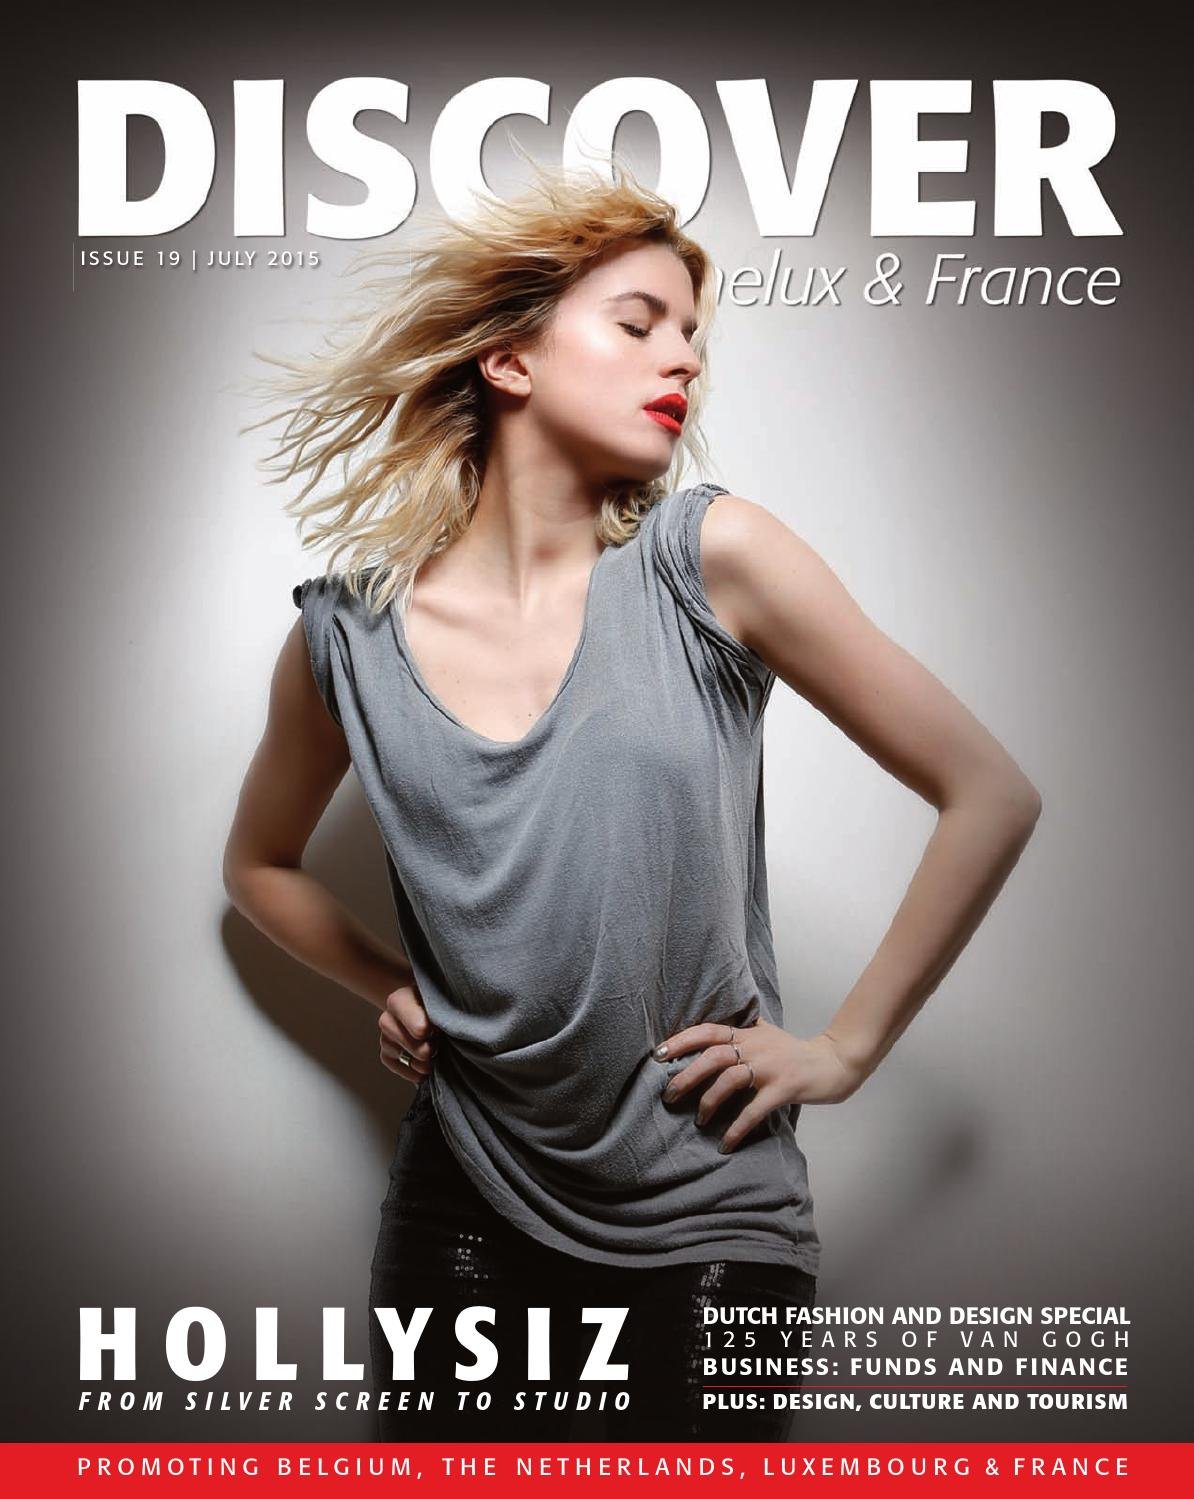 Discover benelux issue 19 july 2015 by scan group issuu malvernweather Images